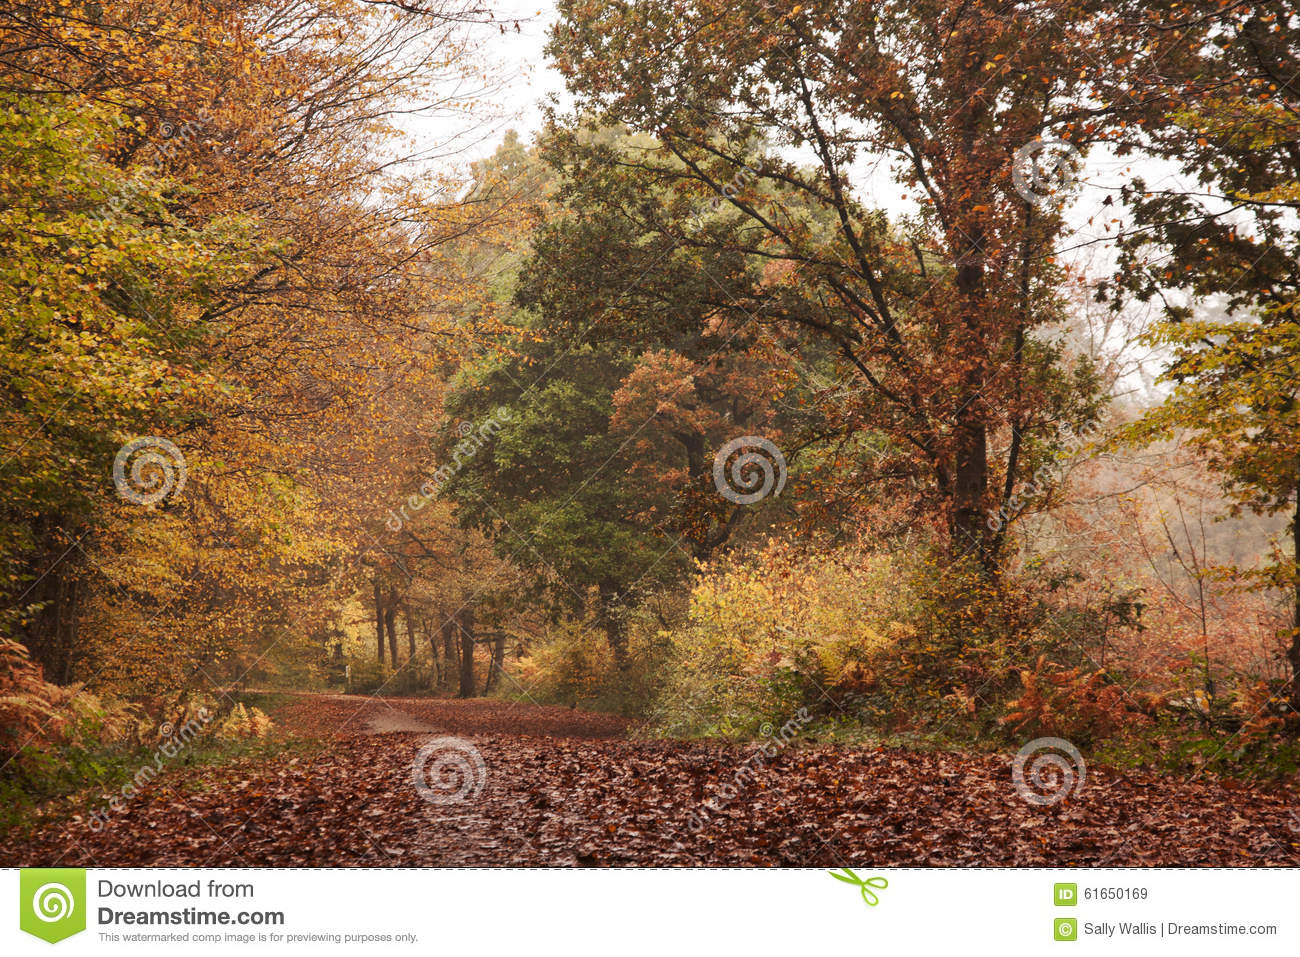 In Keats' Ode, why is autumn season called